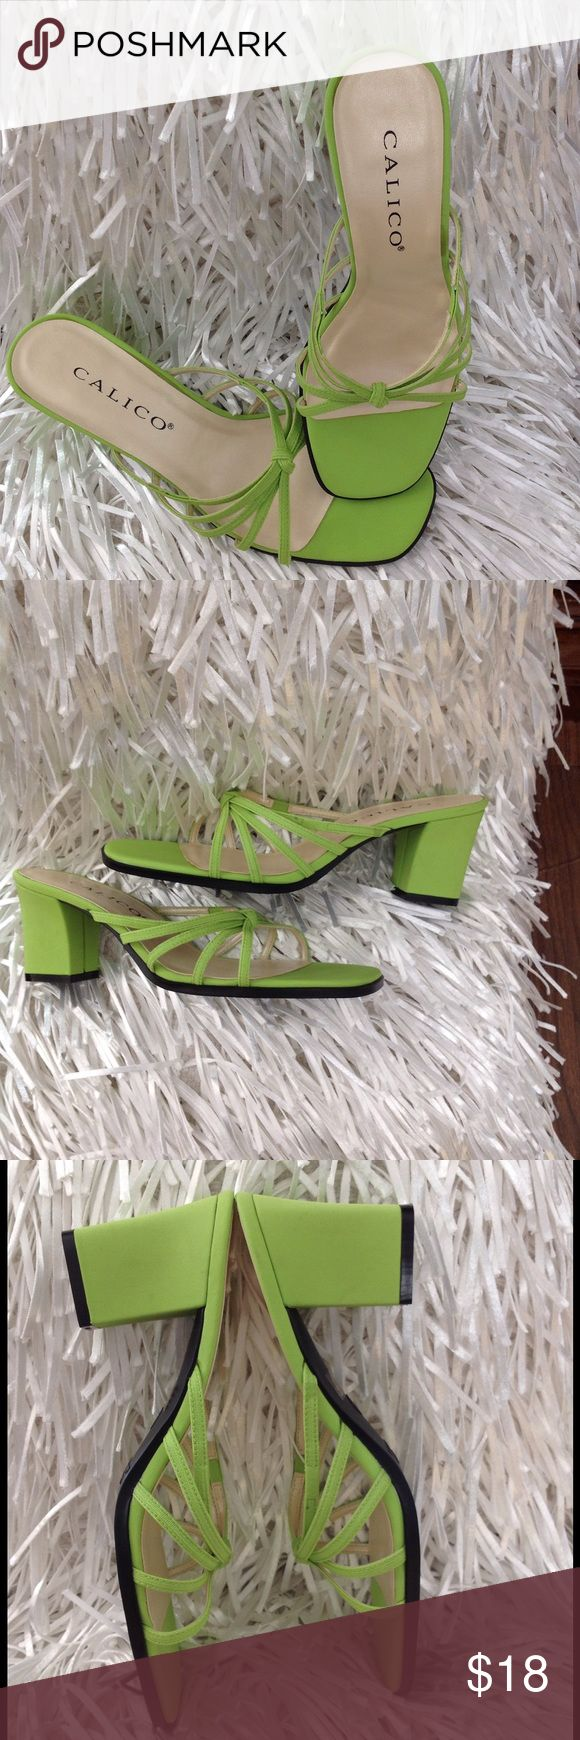 """Calico sandals neon green slip on heels size 8.5 Calico sandals. Neon green color. The heel is about 3"""" tall. Size 8.5 B. These would be very stylish with any spring or summer outfit. Good preowned condition. calico Shoes Sandals"""